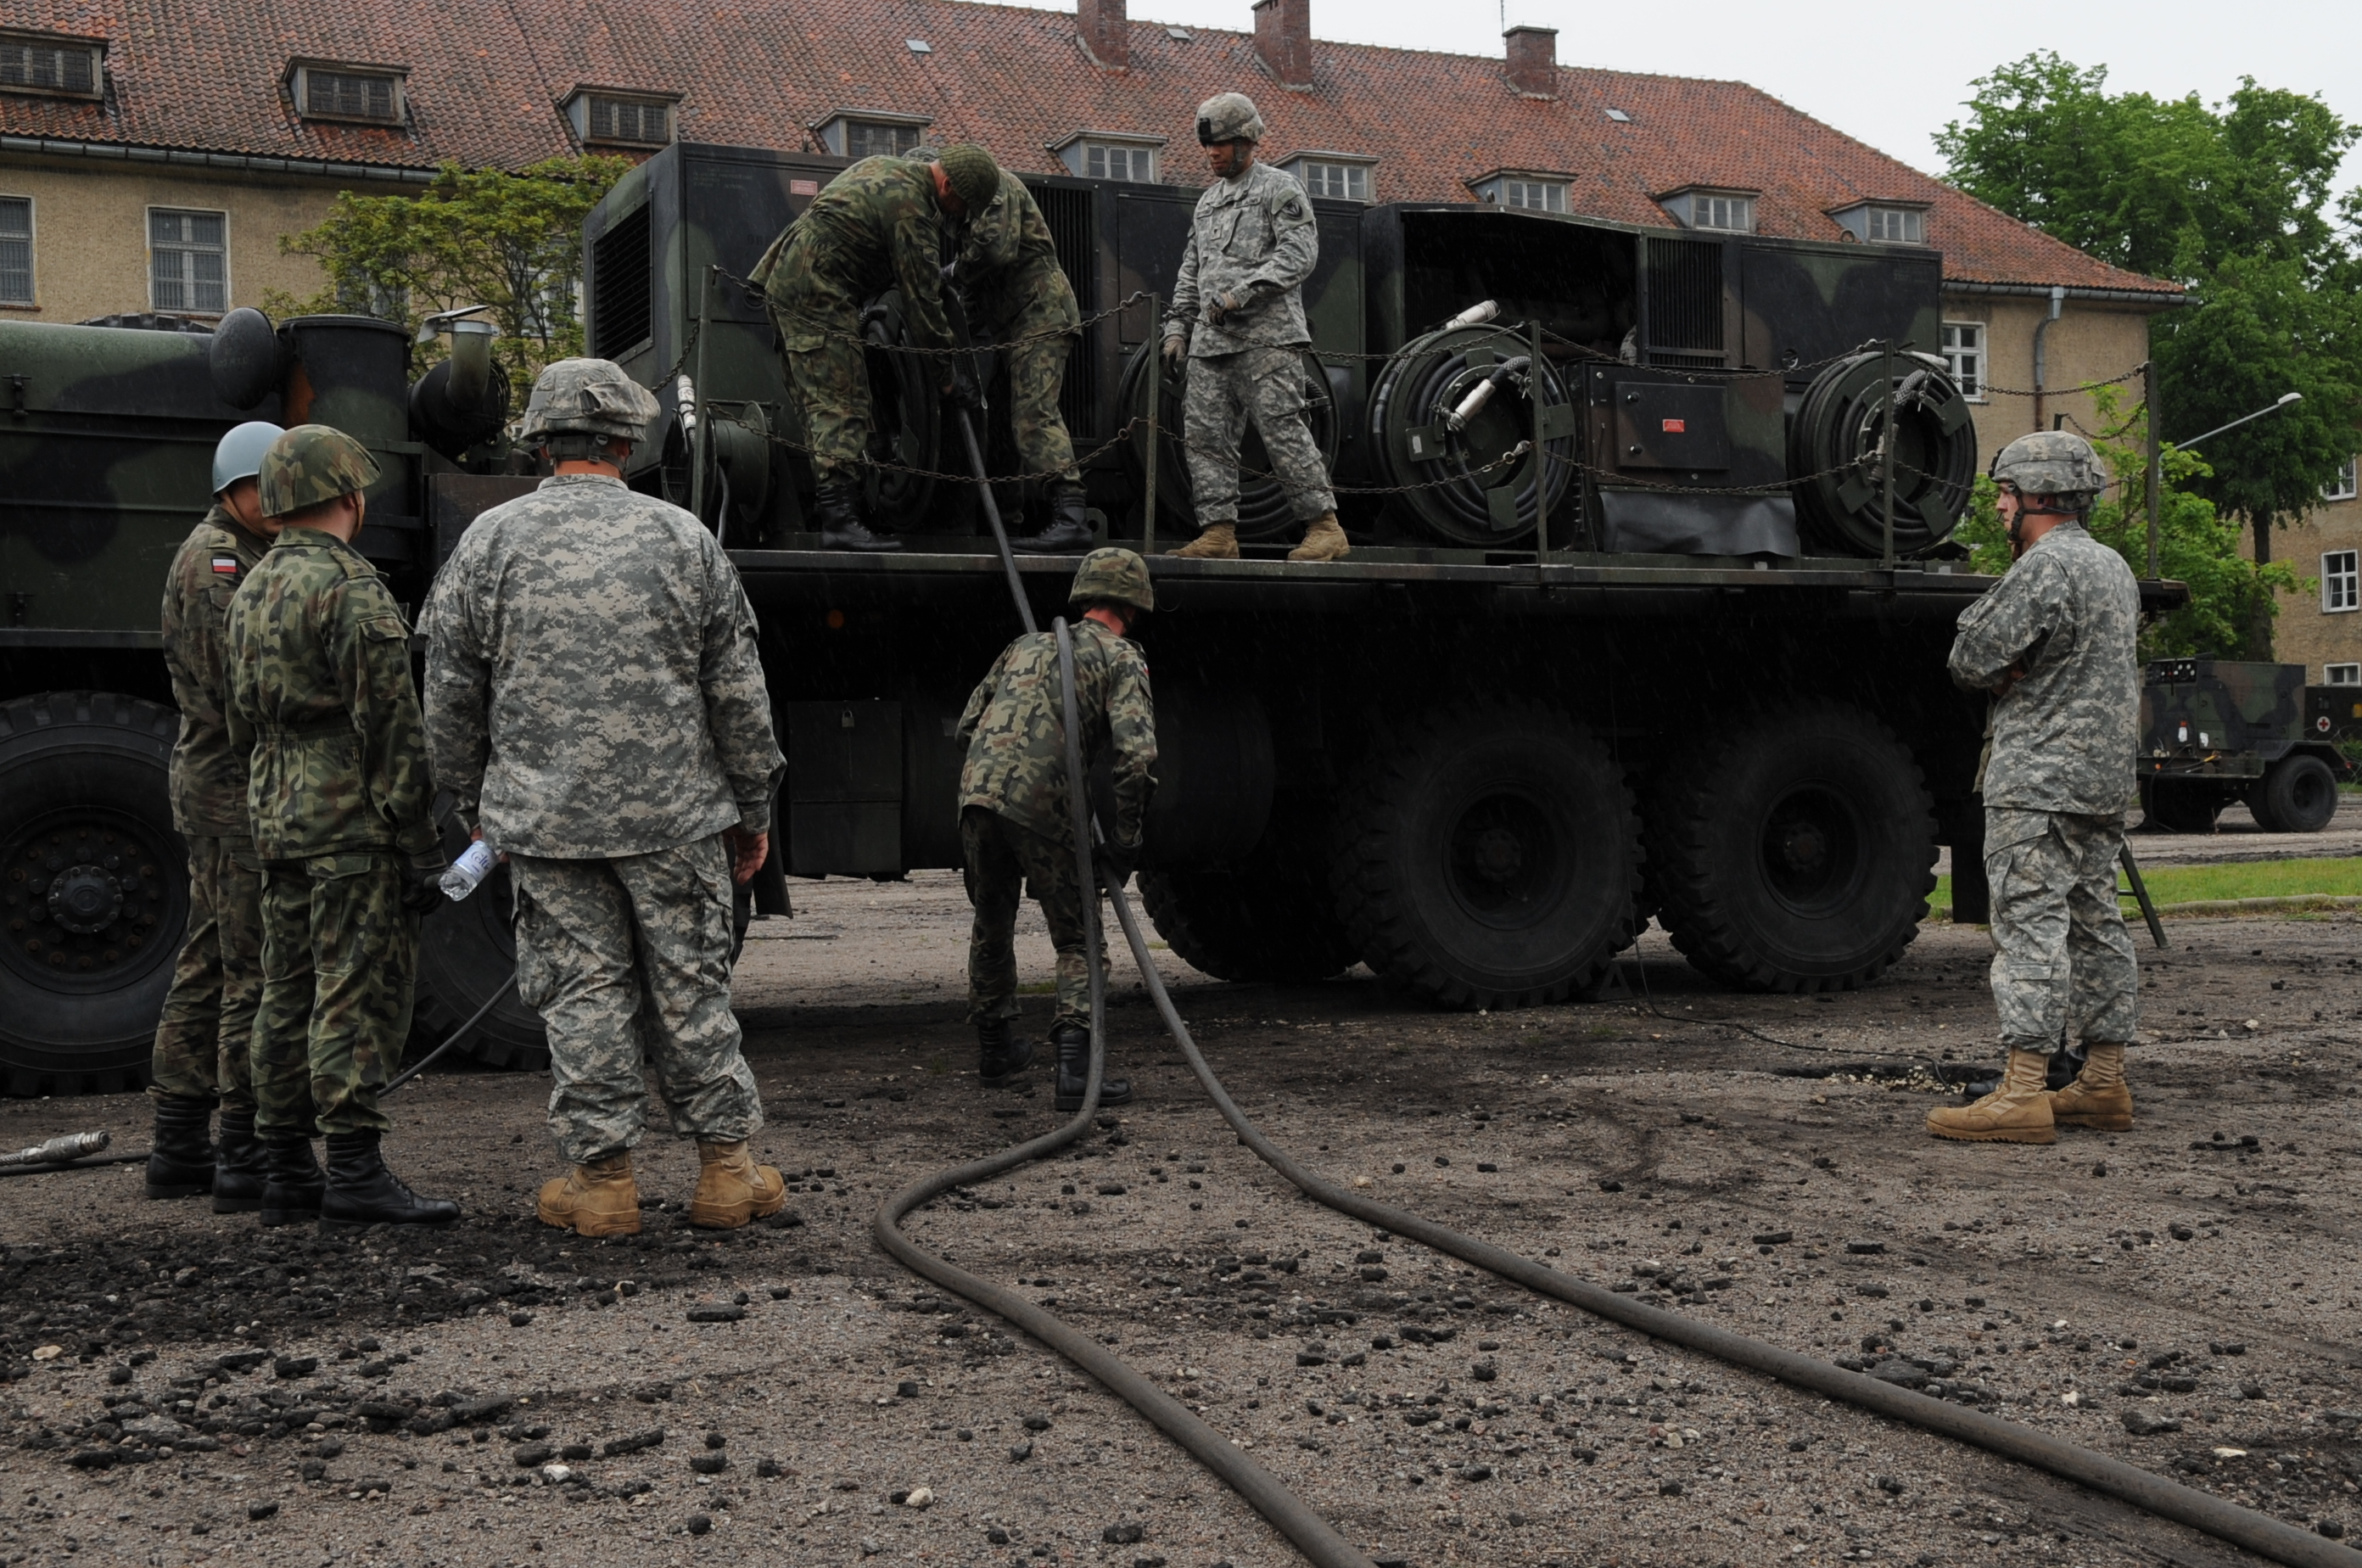 US Army soldiers familiarise members of the Polish military on how to conduct preventive maintenance on the Patriot missile systems in Morag, Poland, in 2010. (US Army photo)